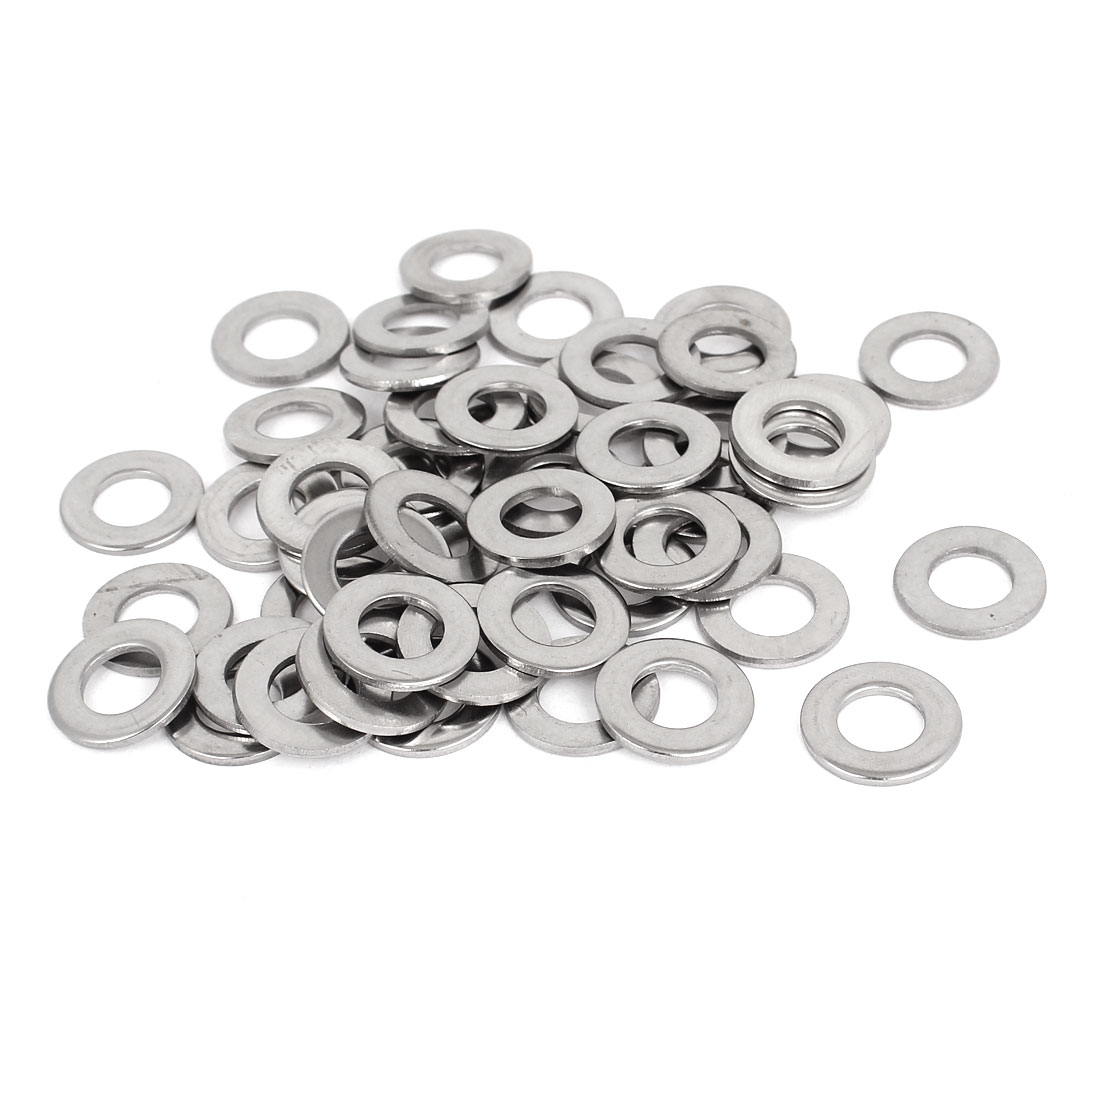 """50pcs Silver Tone 304 Stainless Steel Flat Washer 3/8"""" for Screws Bolts"""